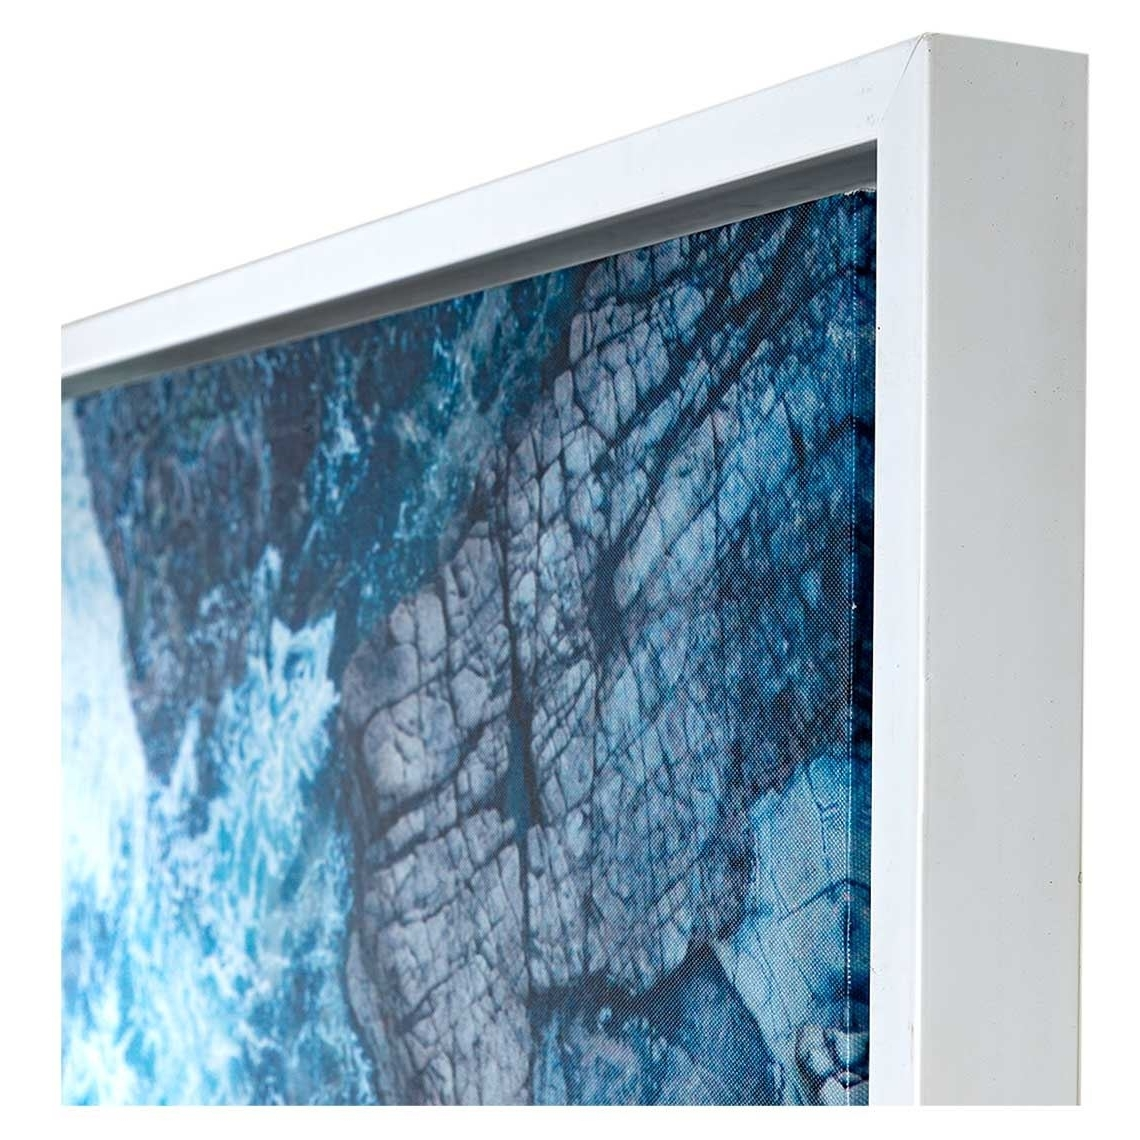 Neeks & Gaston Framed Canvas 120x100cm Mooloolaba Waves In Trendy Mandurah Canvas Wall Art (View 4 of 15)